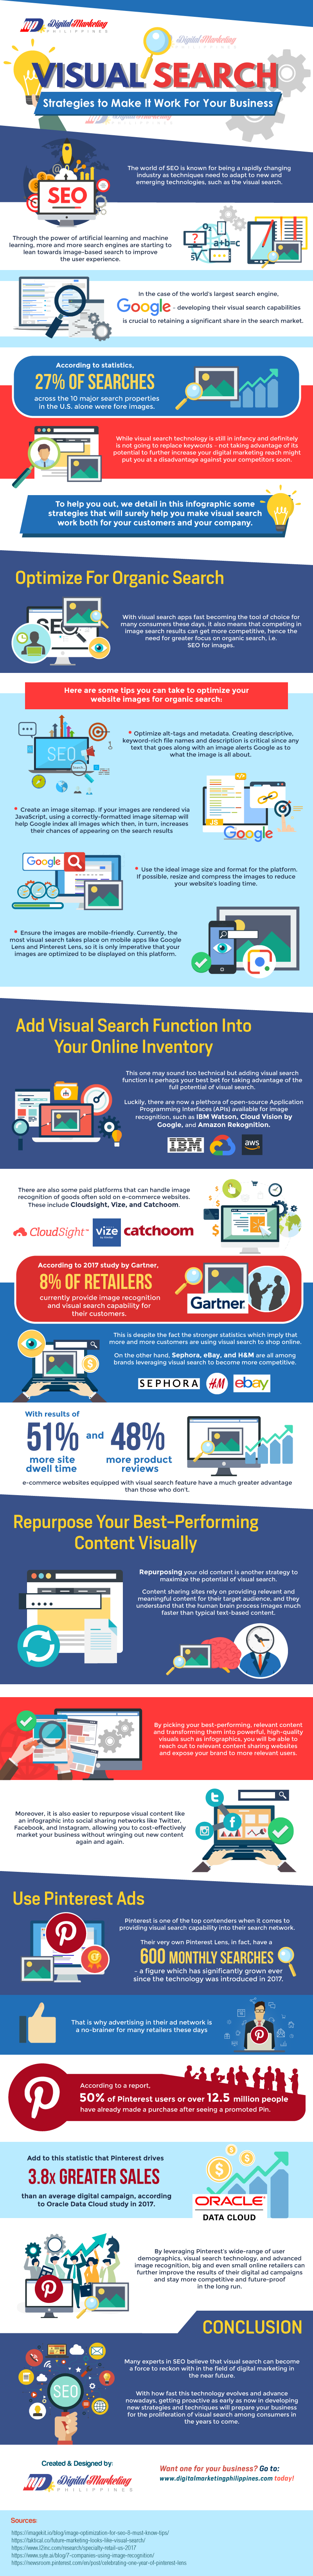 Visual Search: Strategies to Make it Work For Your Business [Infographic]